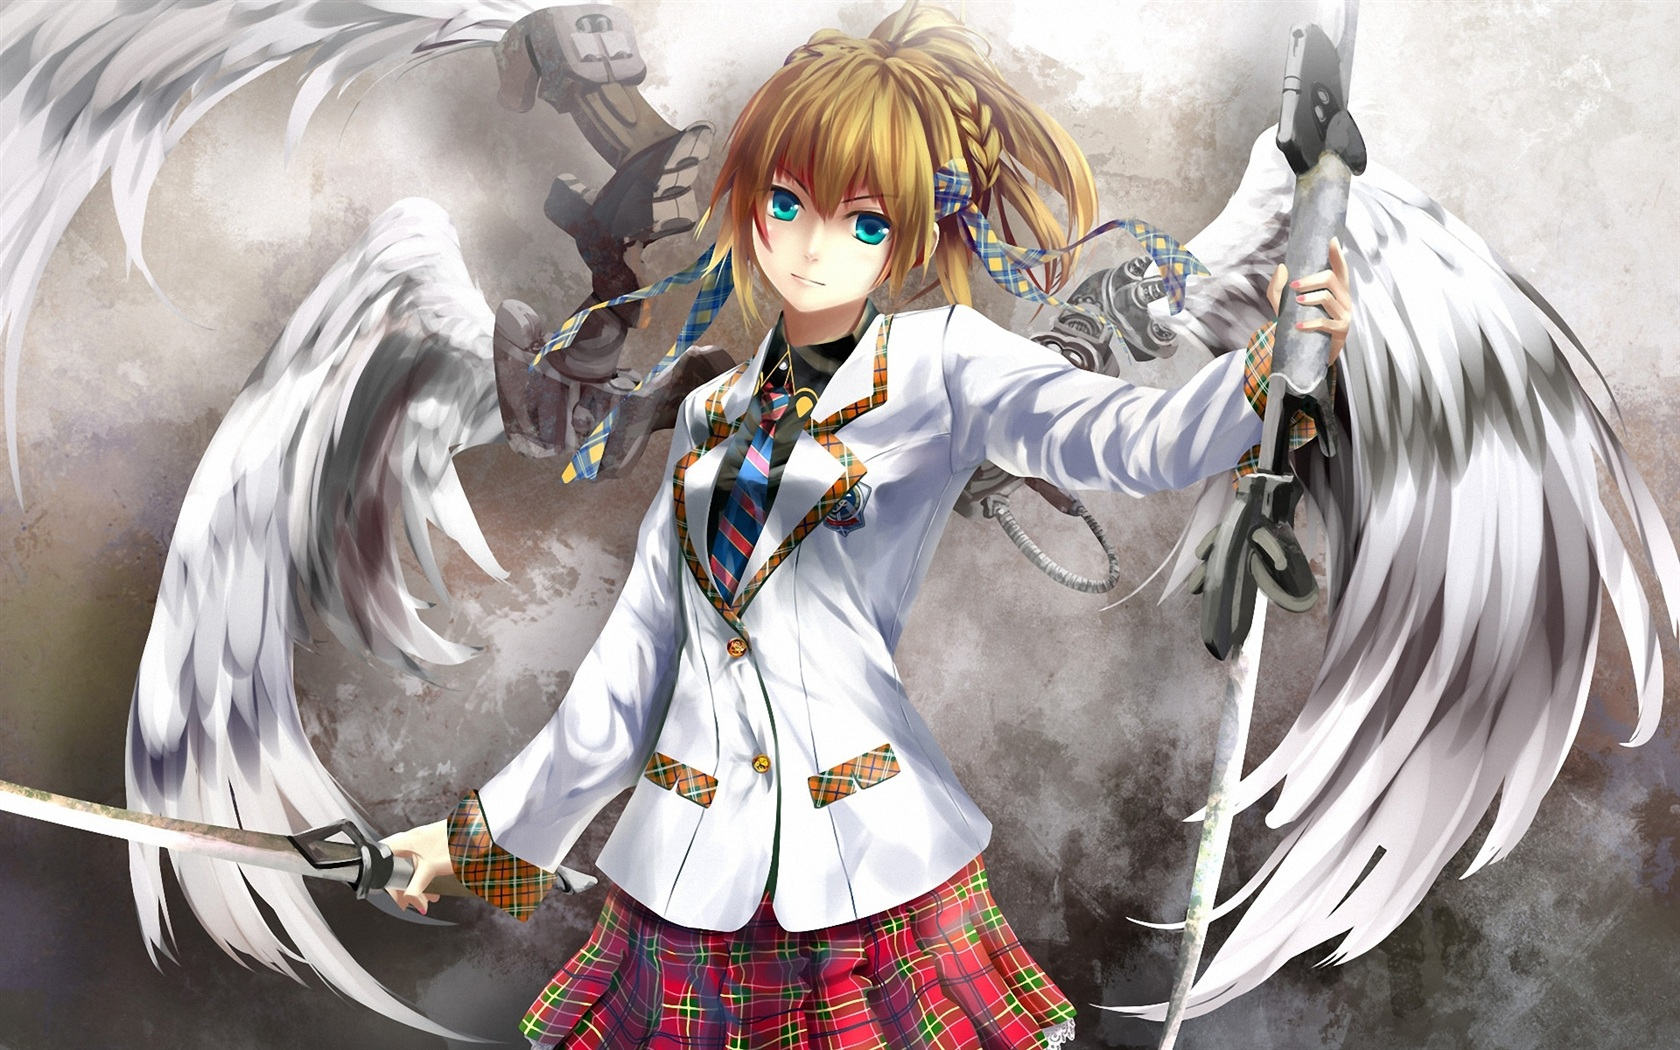 Wallpaper anime angel girl with a sword as a weapon - Girl with sword wallpaper ...